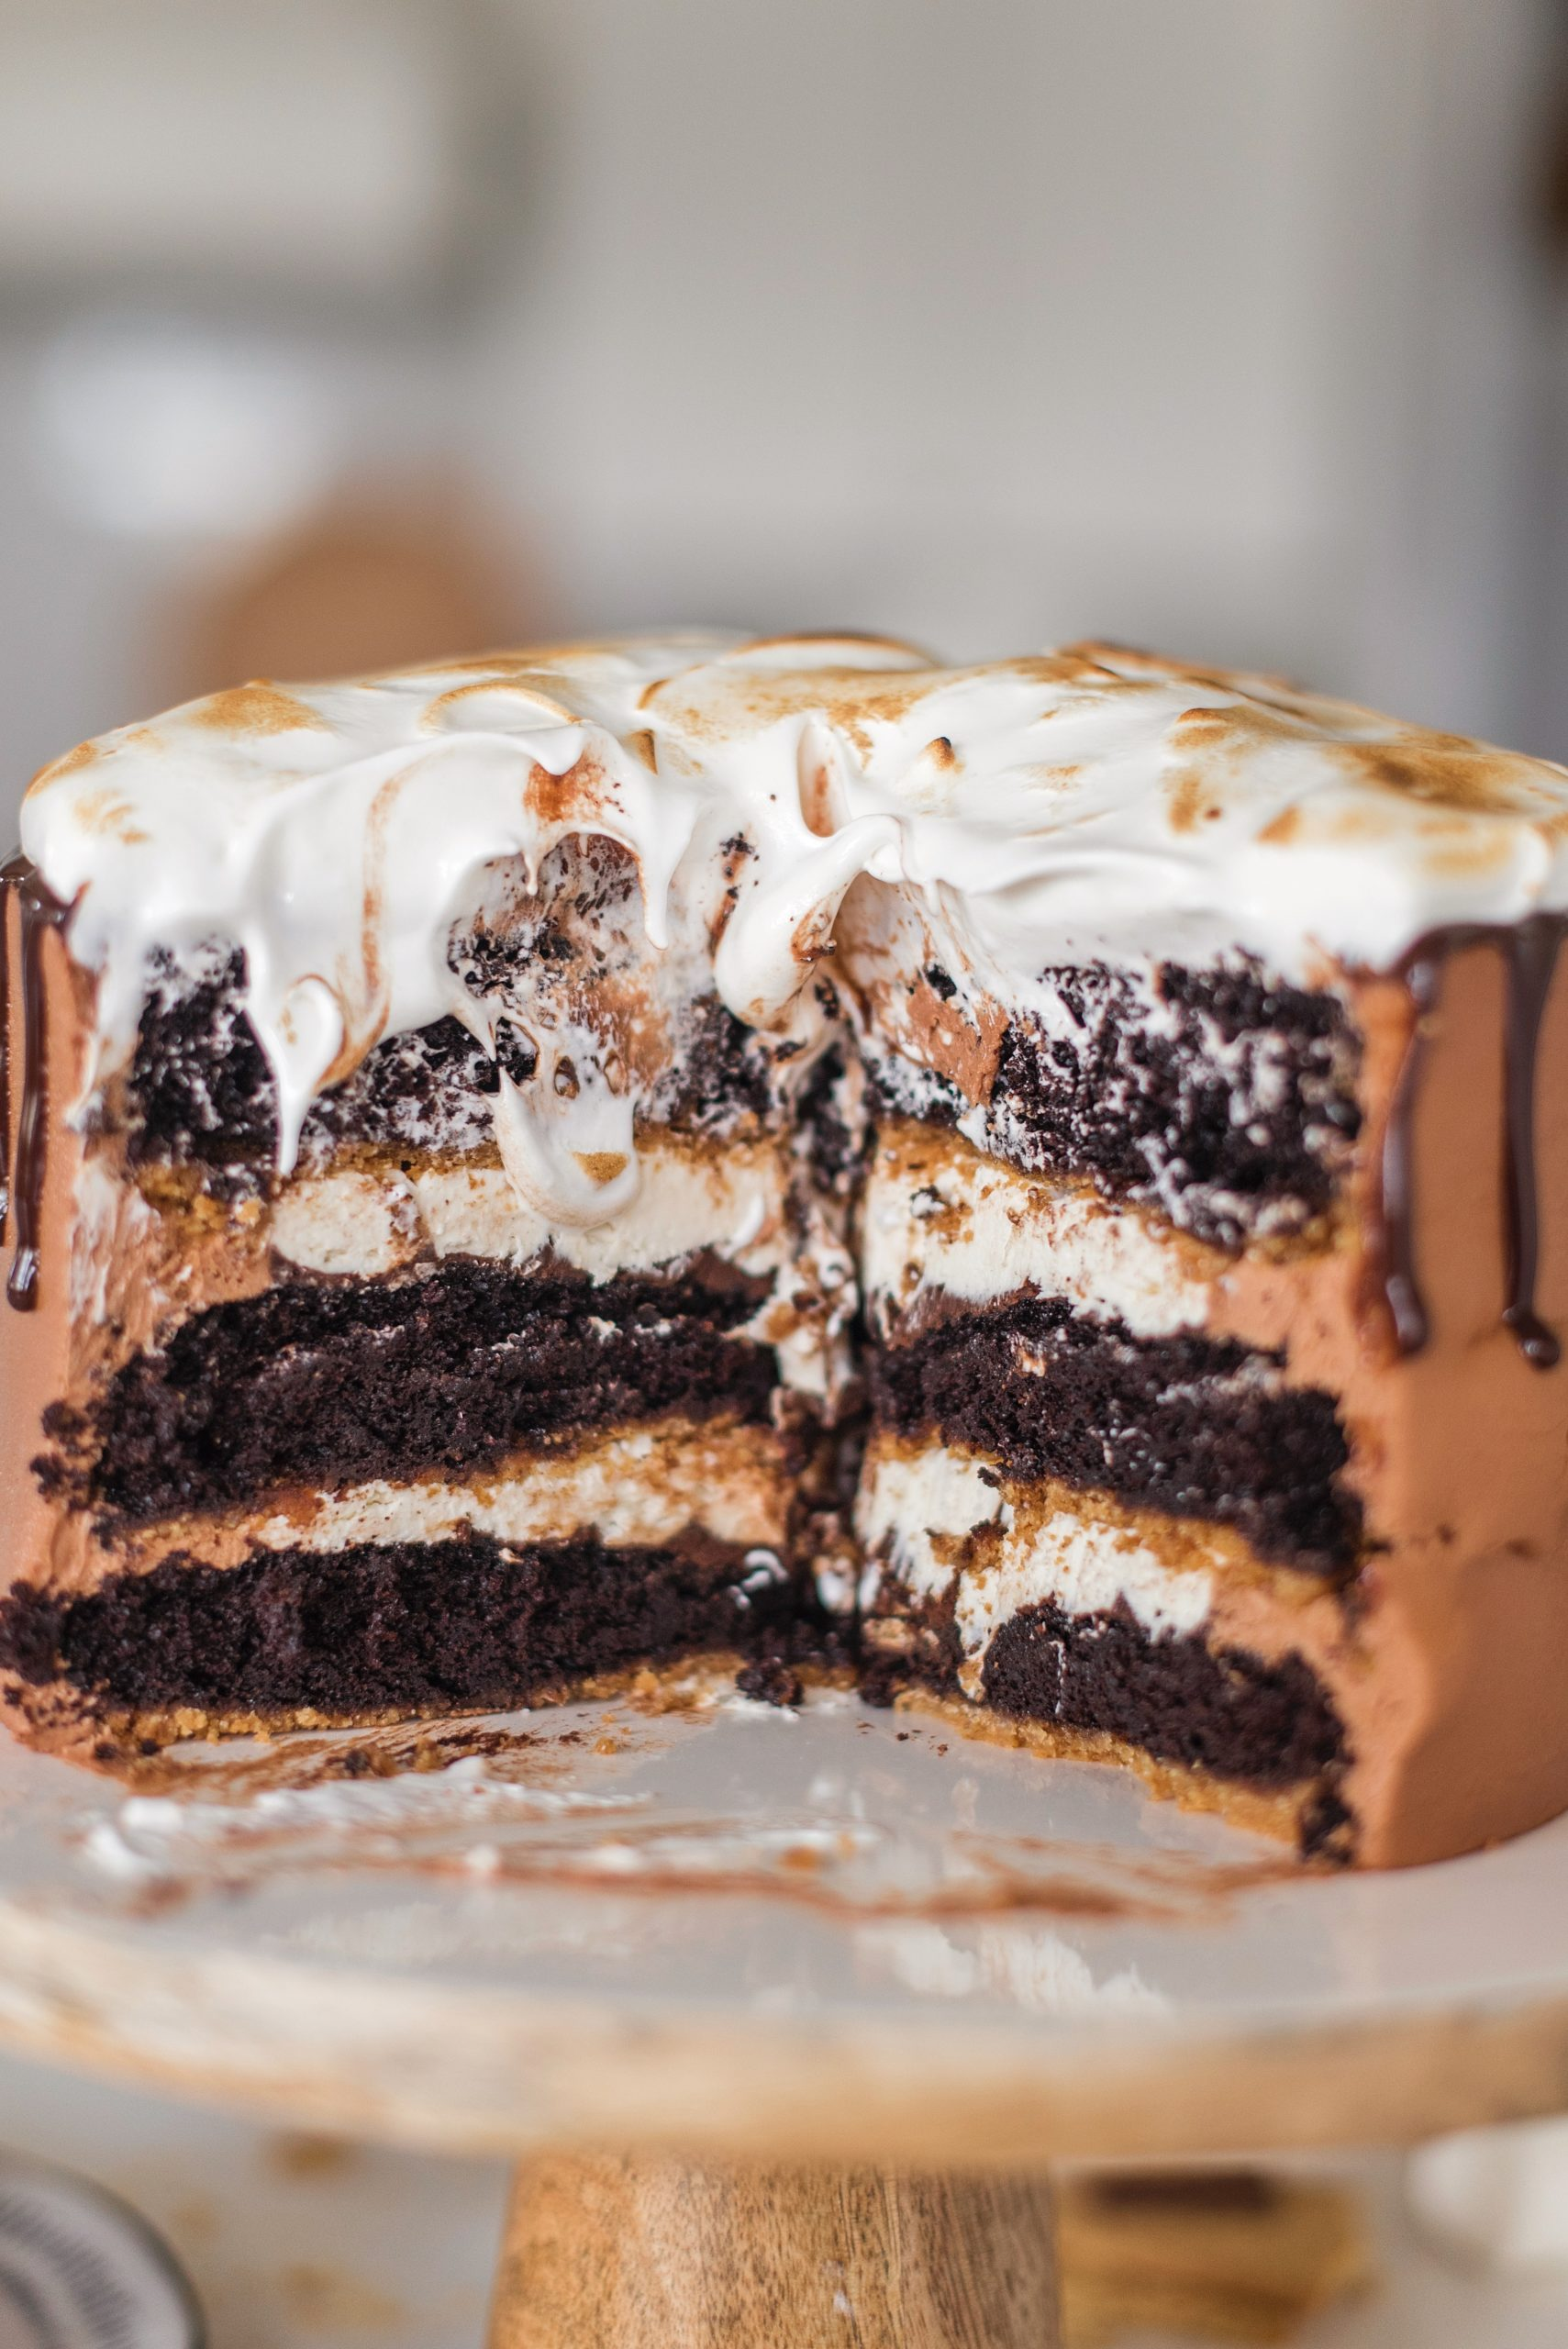 Ultimate S'mores Cake - the perfect cake for summer! Chocolate cake baked on graham cracker crust, filled with chocolate ganache, toasted marshmallow filling, chocolate buttercream and homemade marshmallow fluff. #smorescake #ultimatesmorescake #cakebycourtney #smores #smorescakerecipe #smoresdessert #summercake